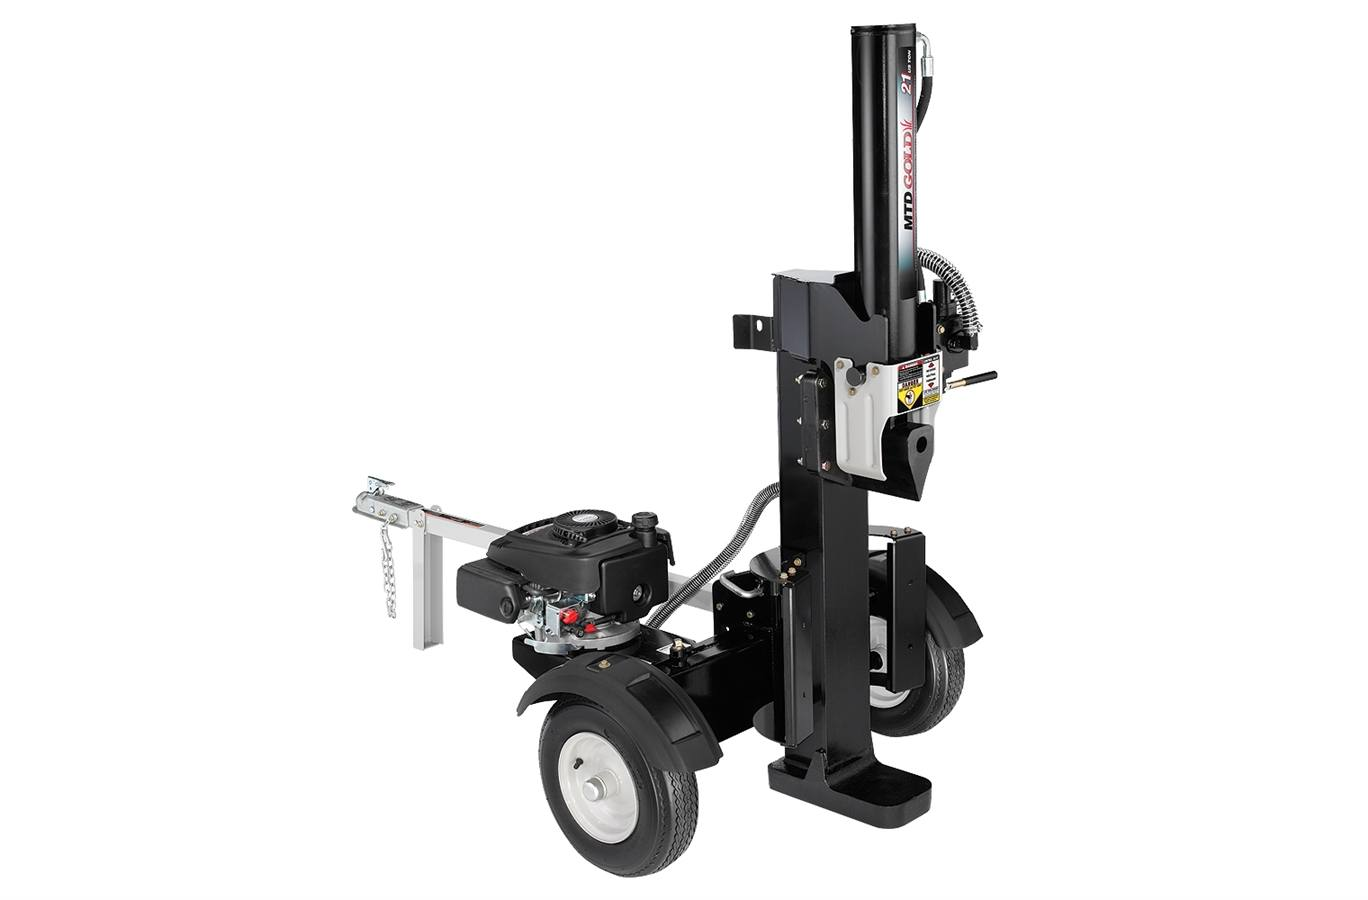 Inventory From Brute And Mtd Gold Specialized Saw Mower Inc Have A 55 Hp Briggs Stratton Log Splitter When Using 2017